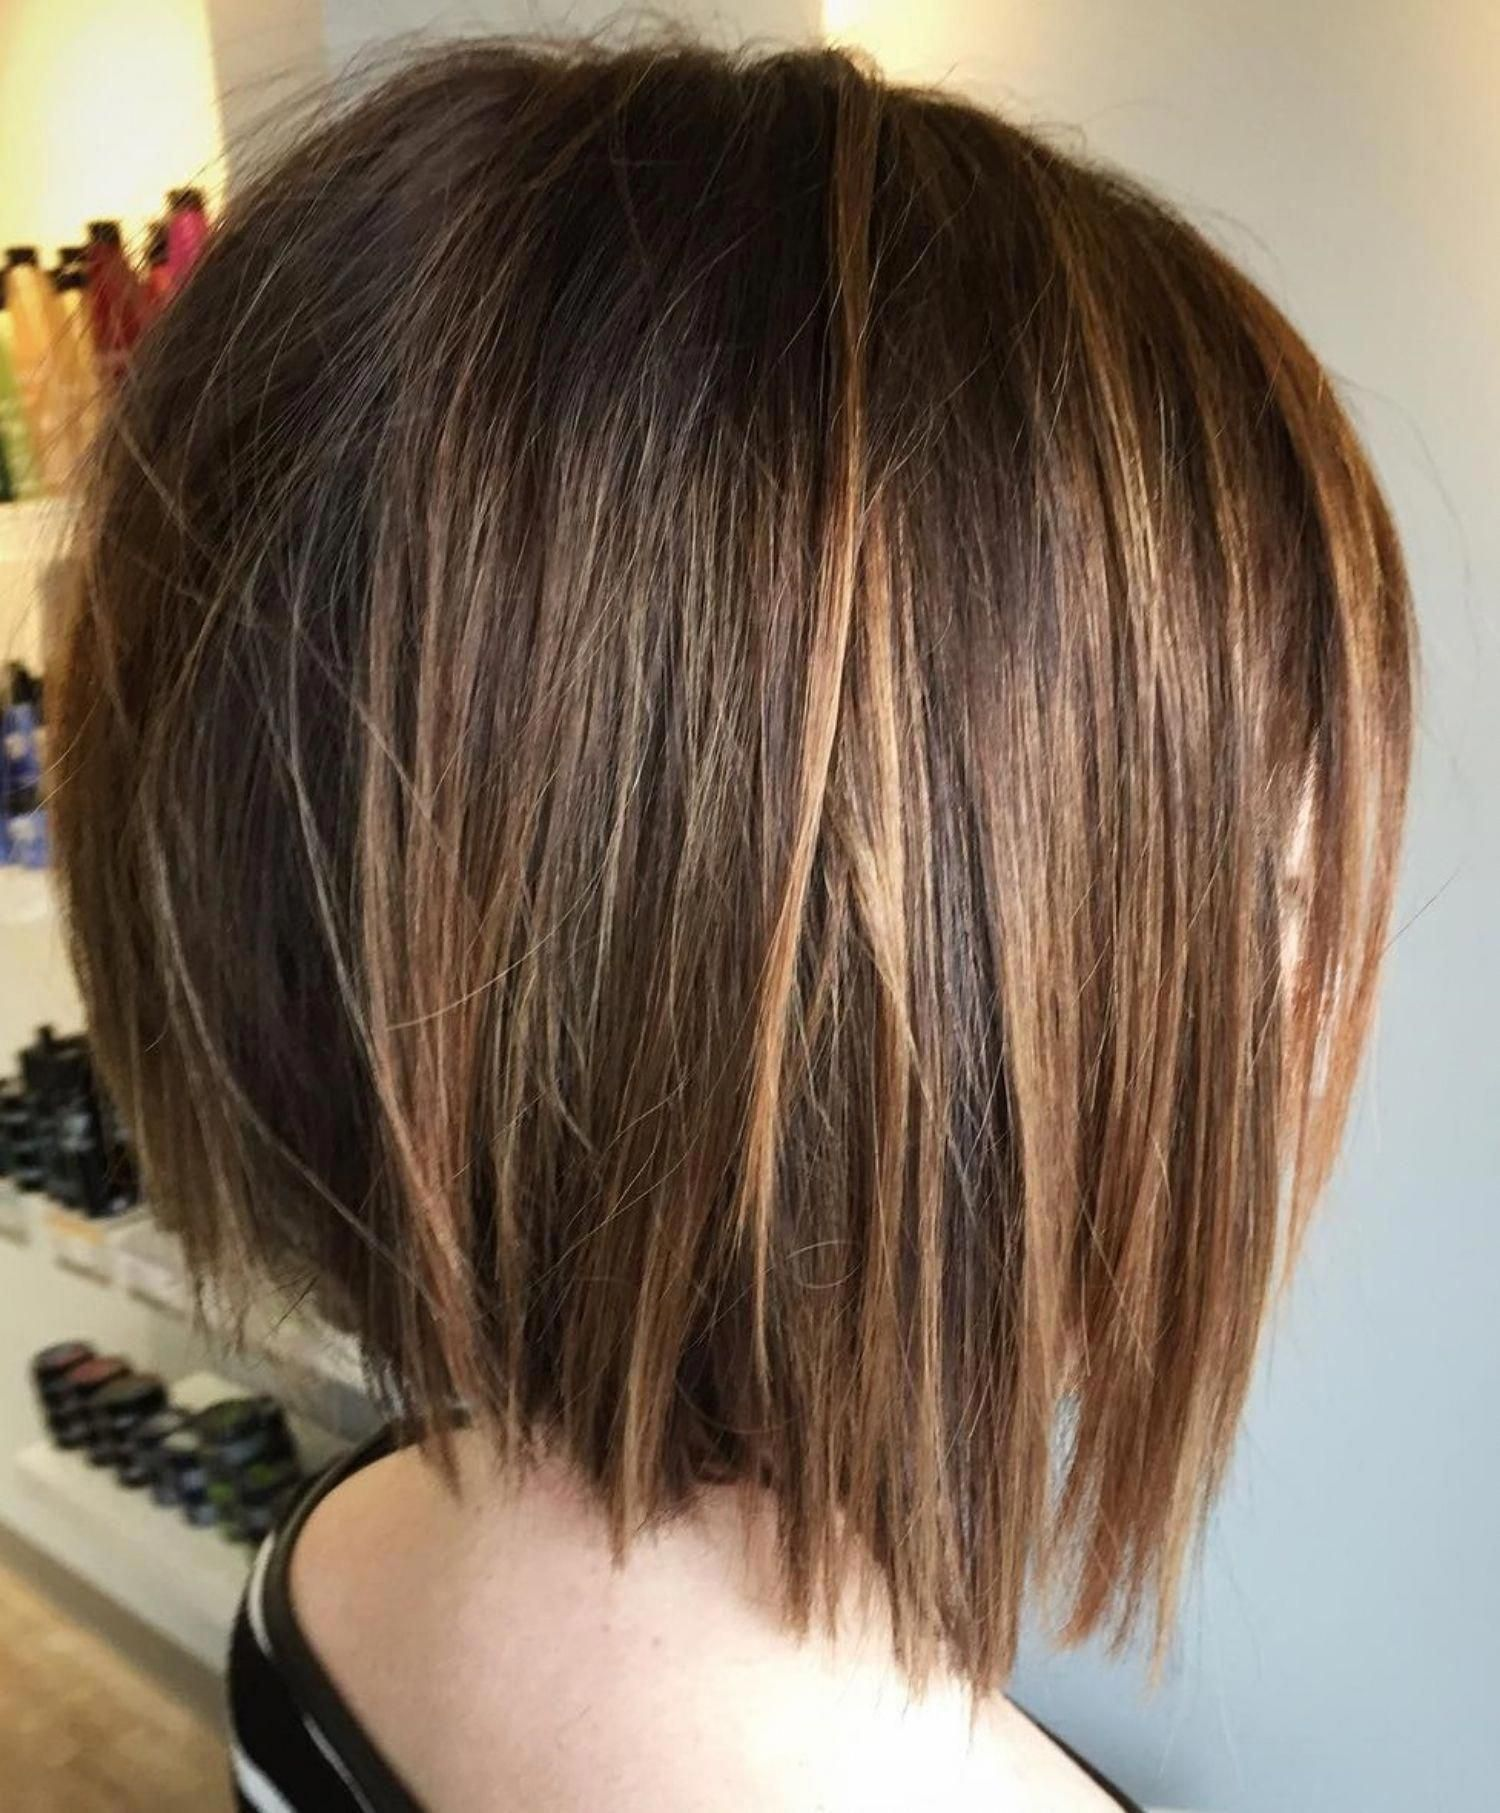 10 Beautiful and Convenient Medium Bob Hairstyles in 10